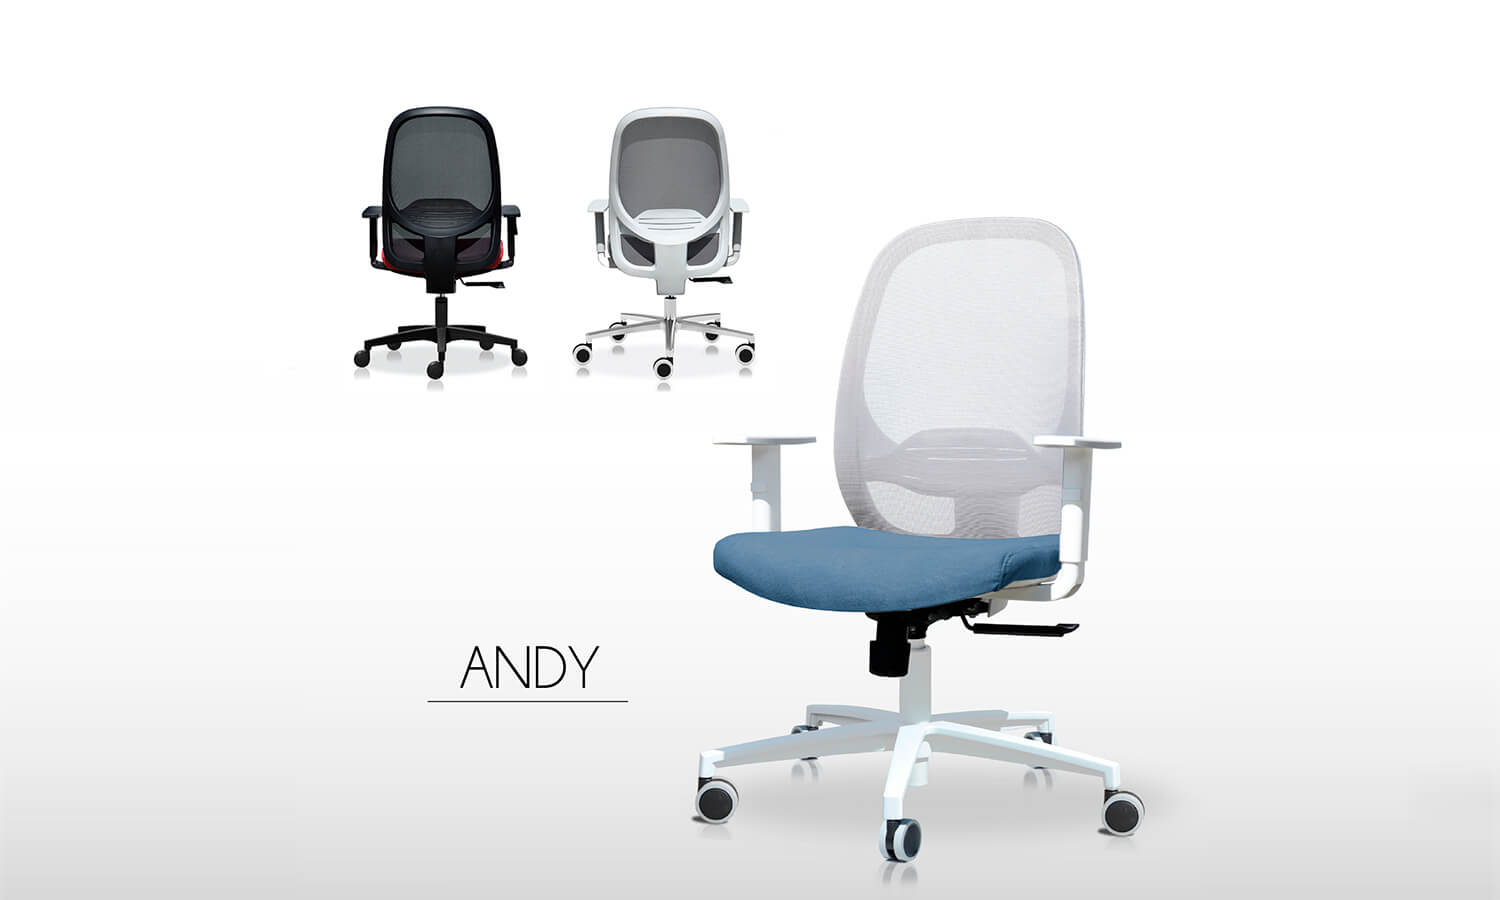 Sillas Andy